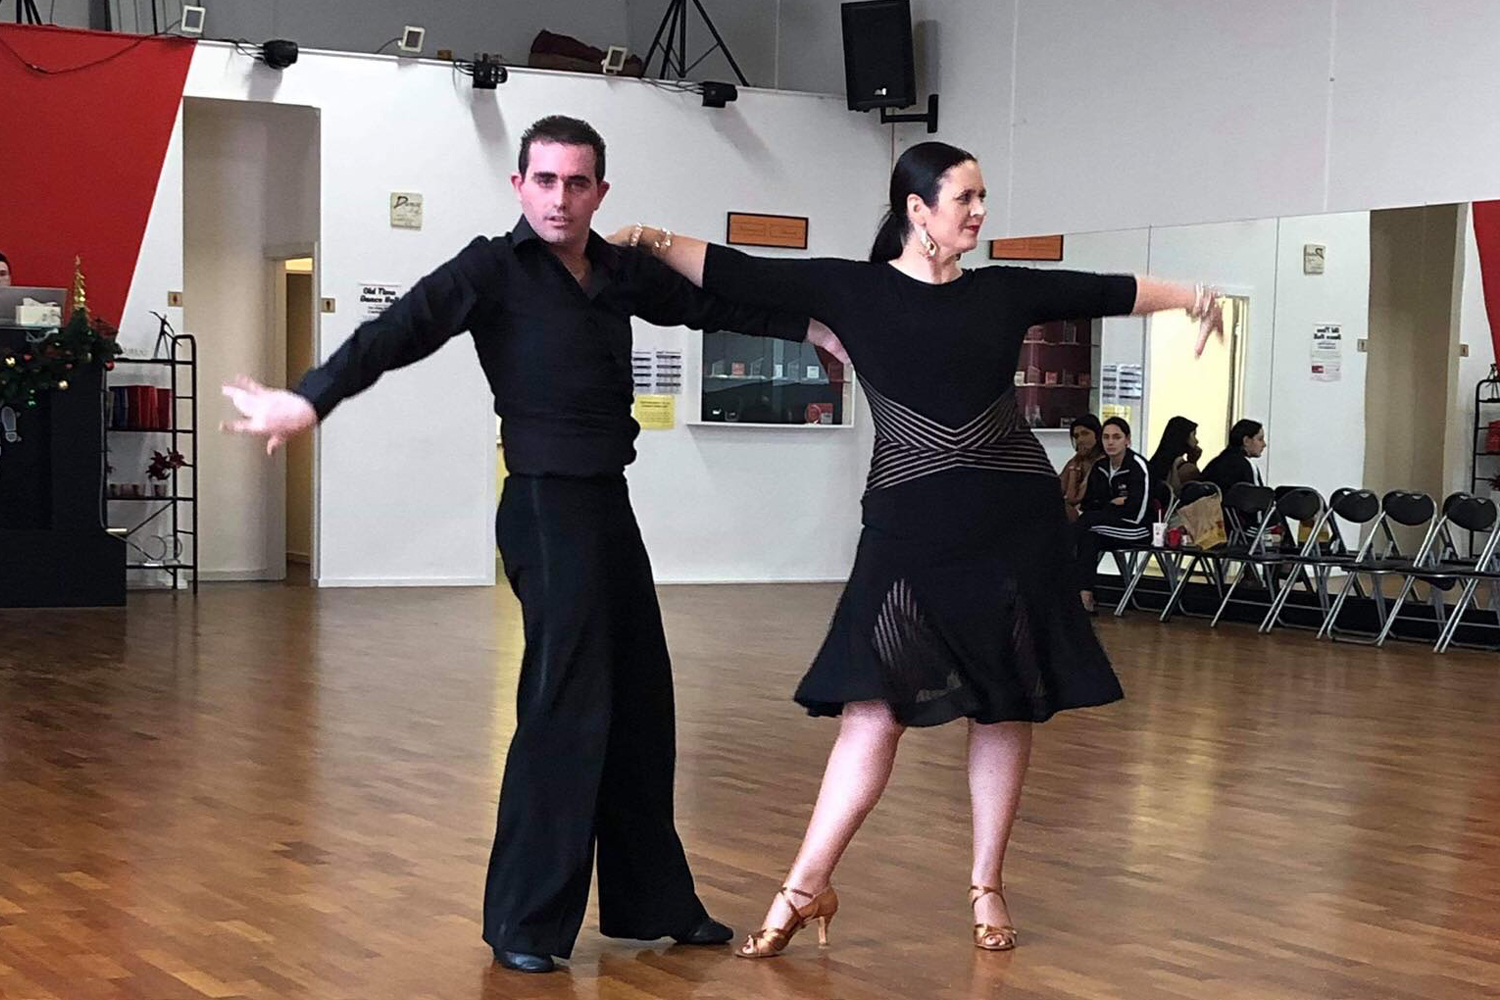 Adult Learn to Dance Ballroom classes